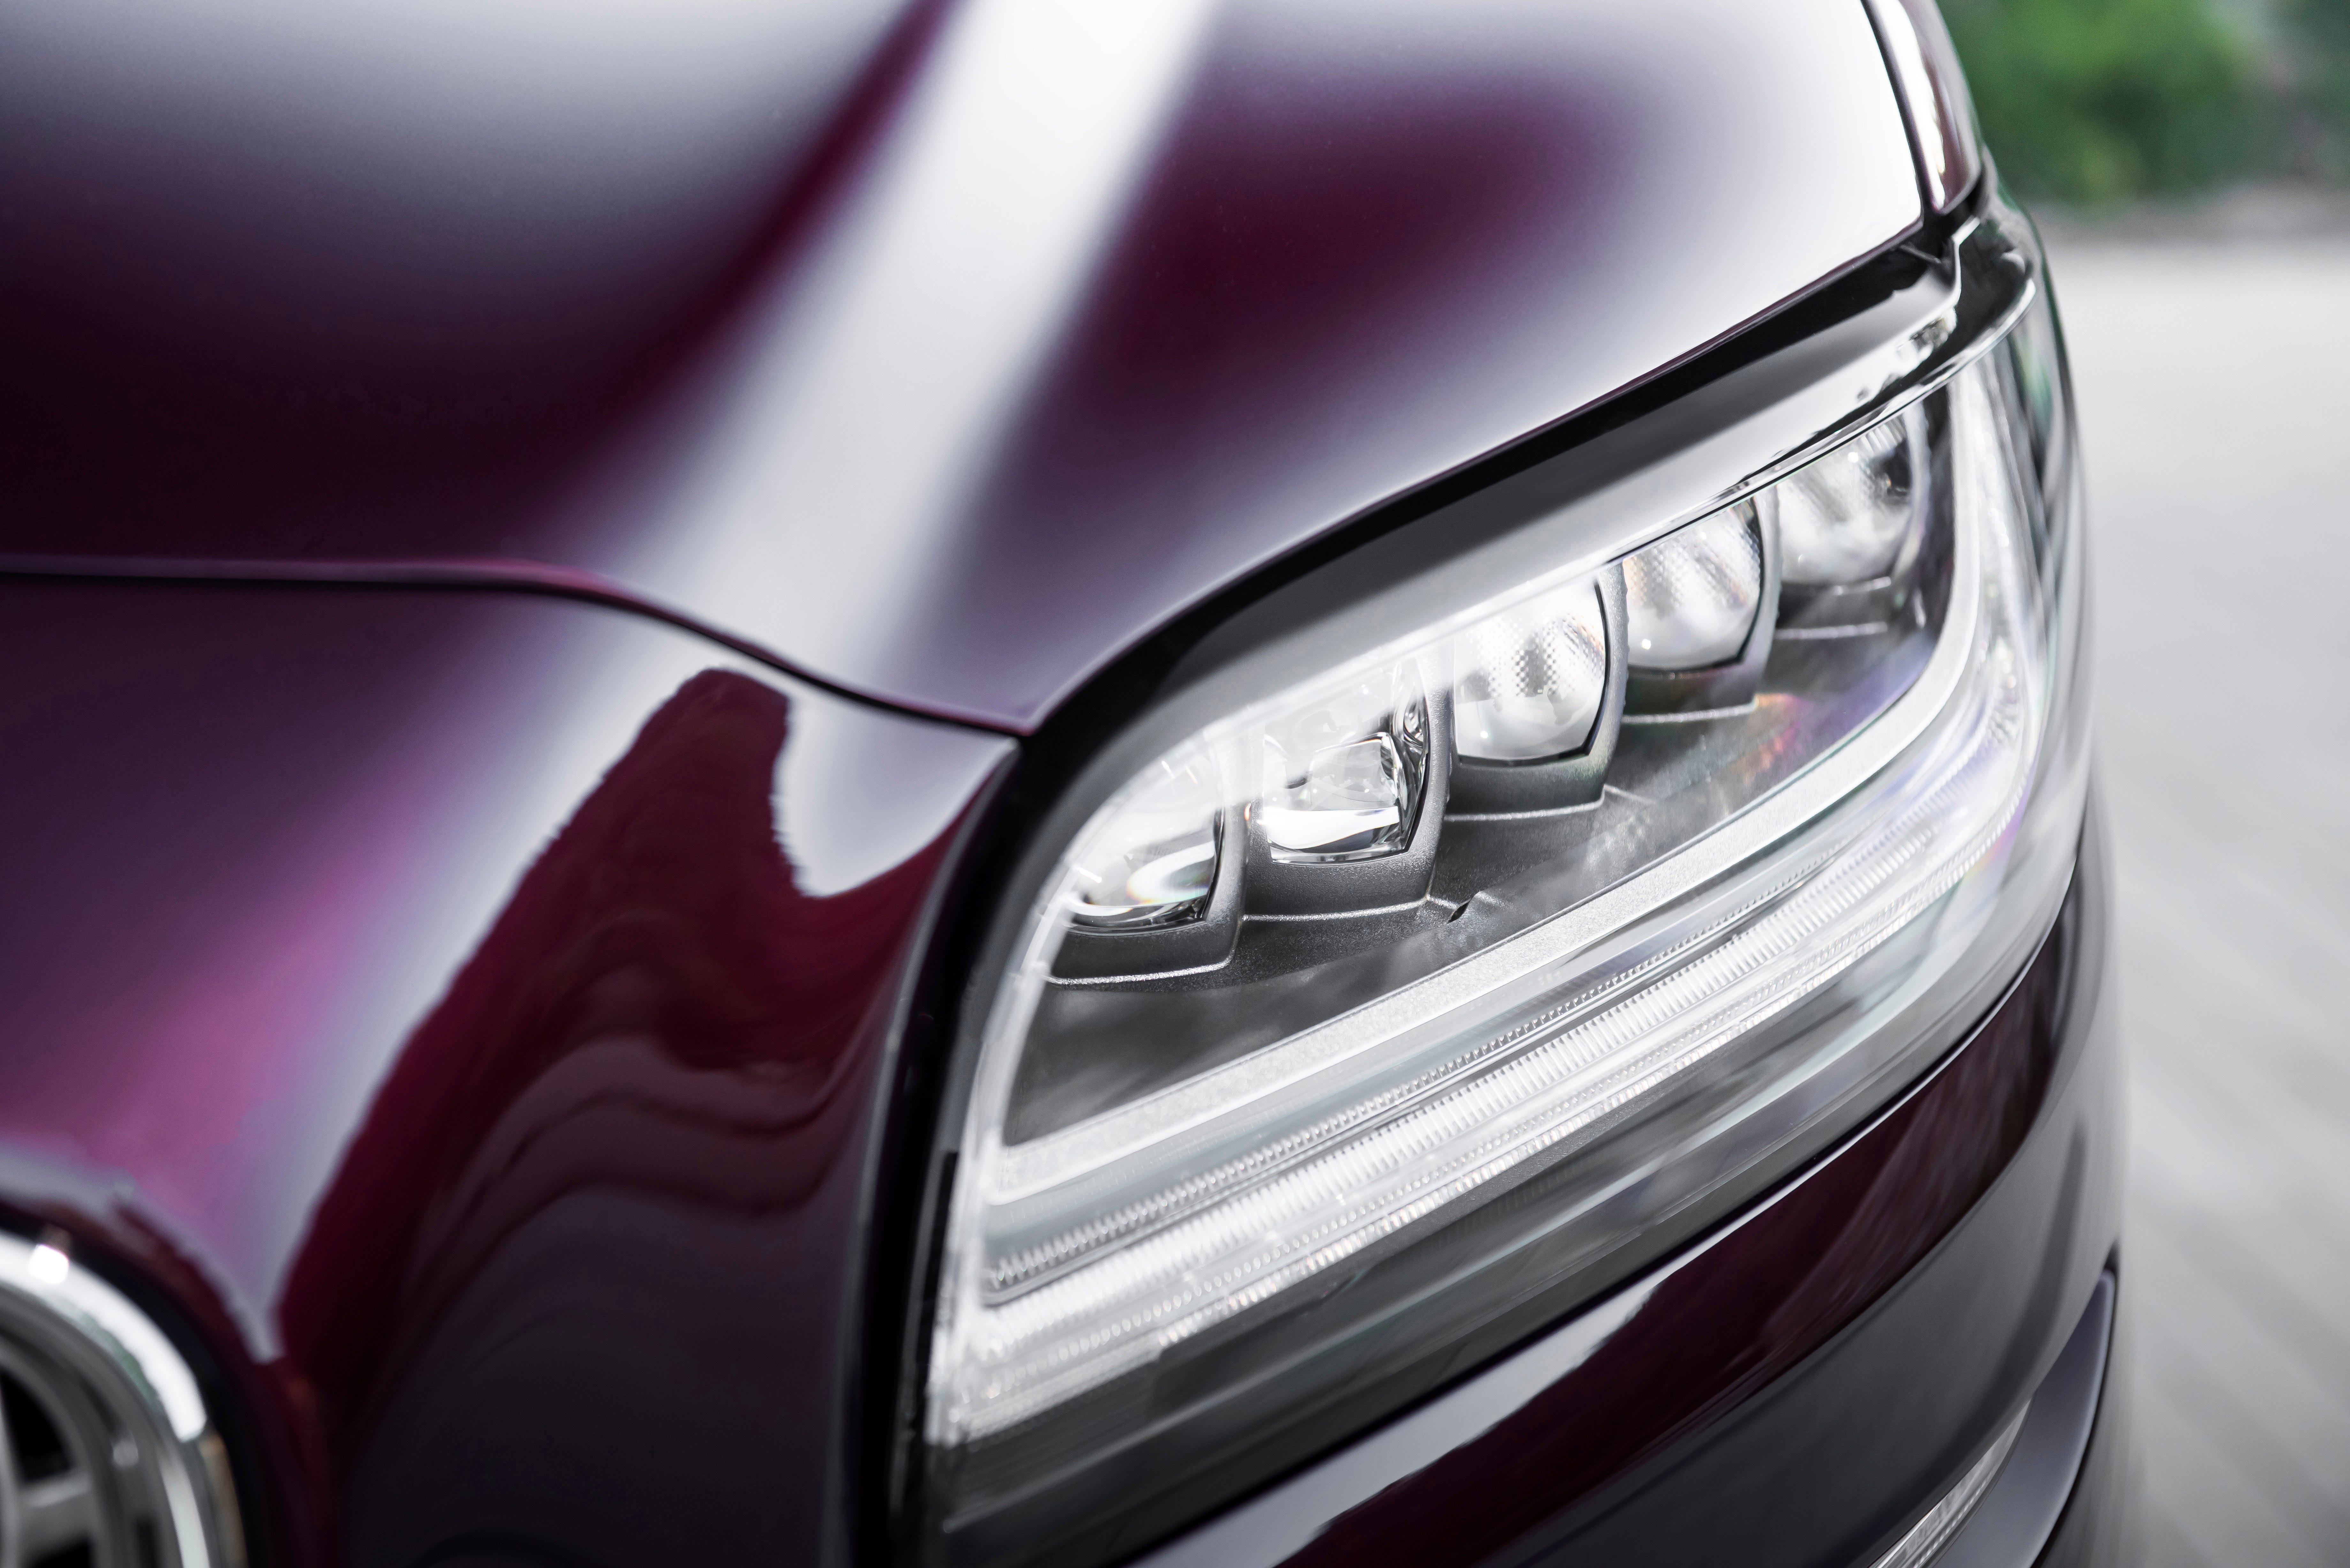 The sleek new Nautilus gets the grille, headlights,